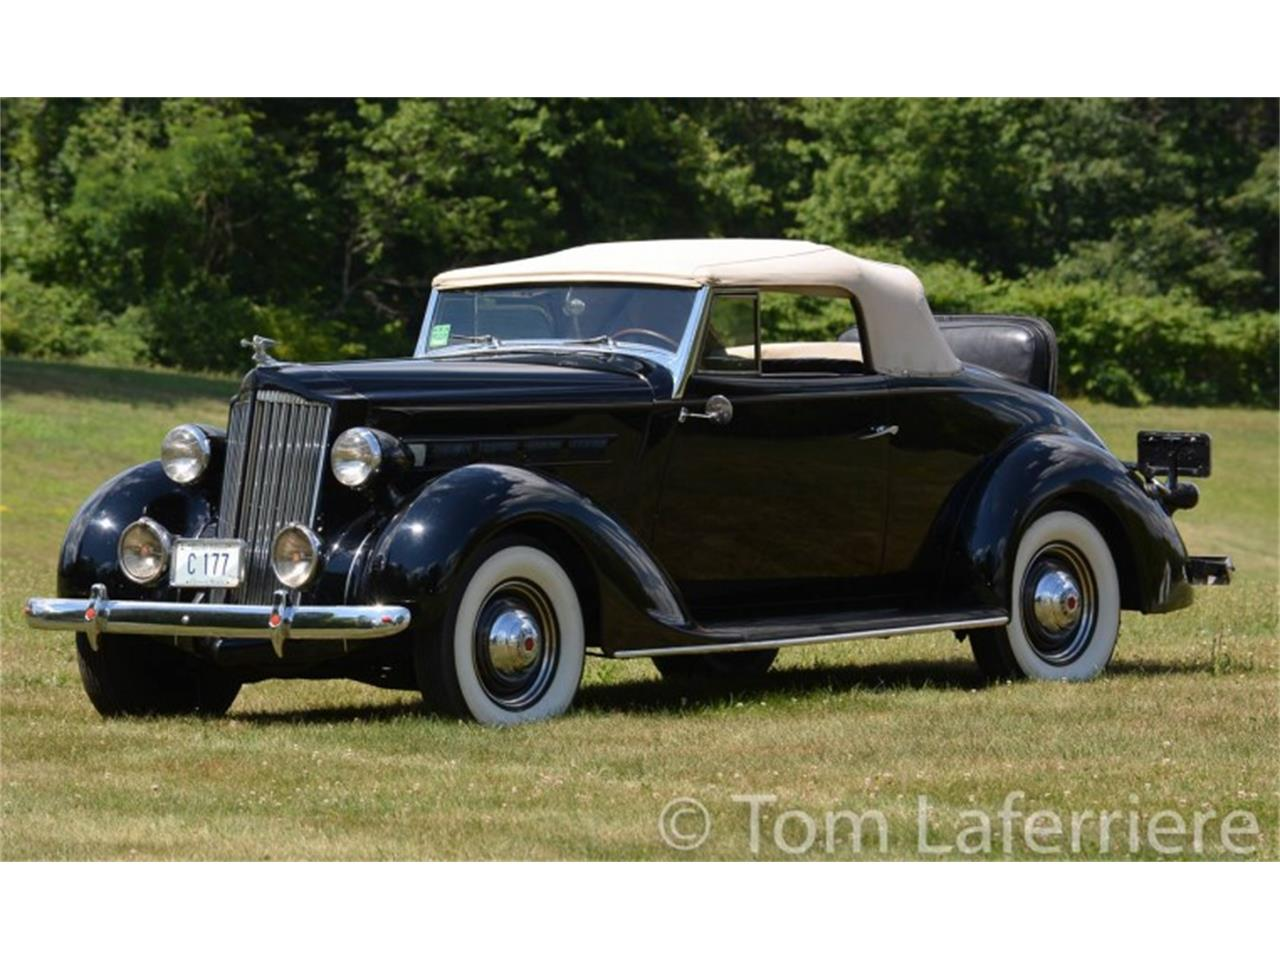 1937 Packard 115 Convertible Coupe in Smithfield, Rhode Island